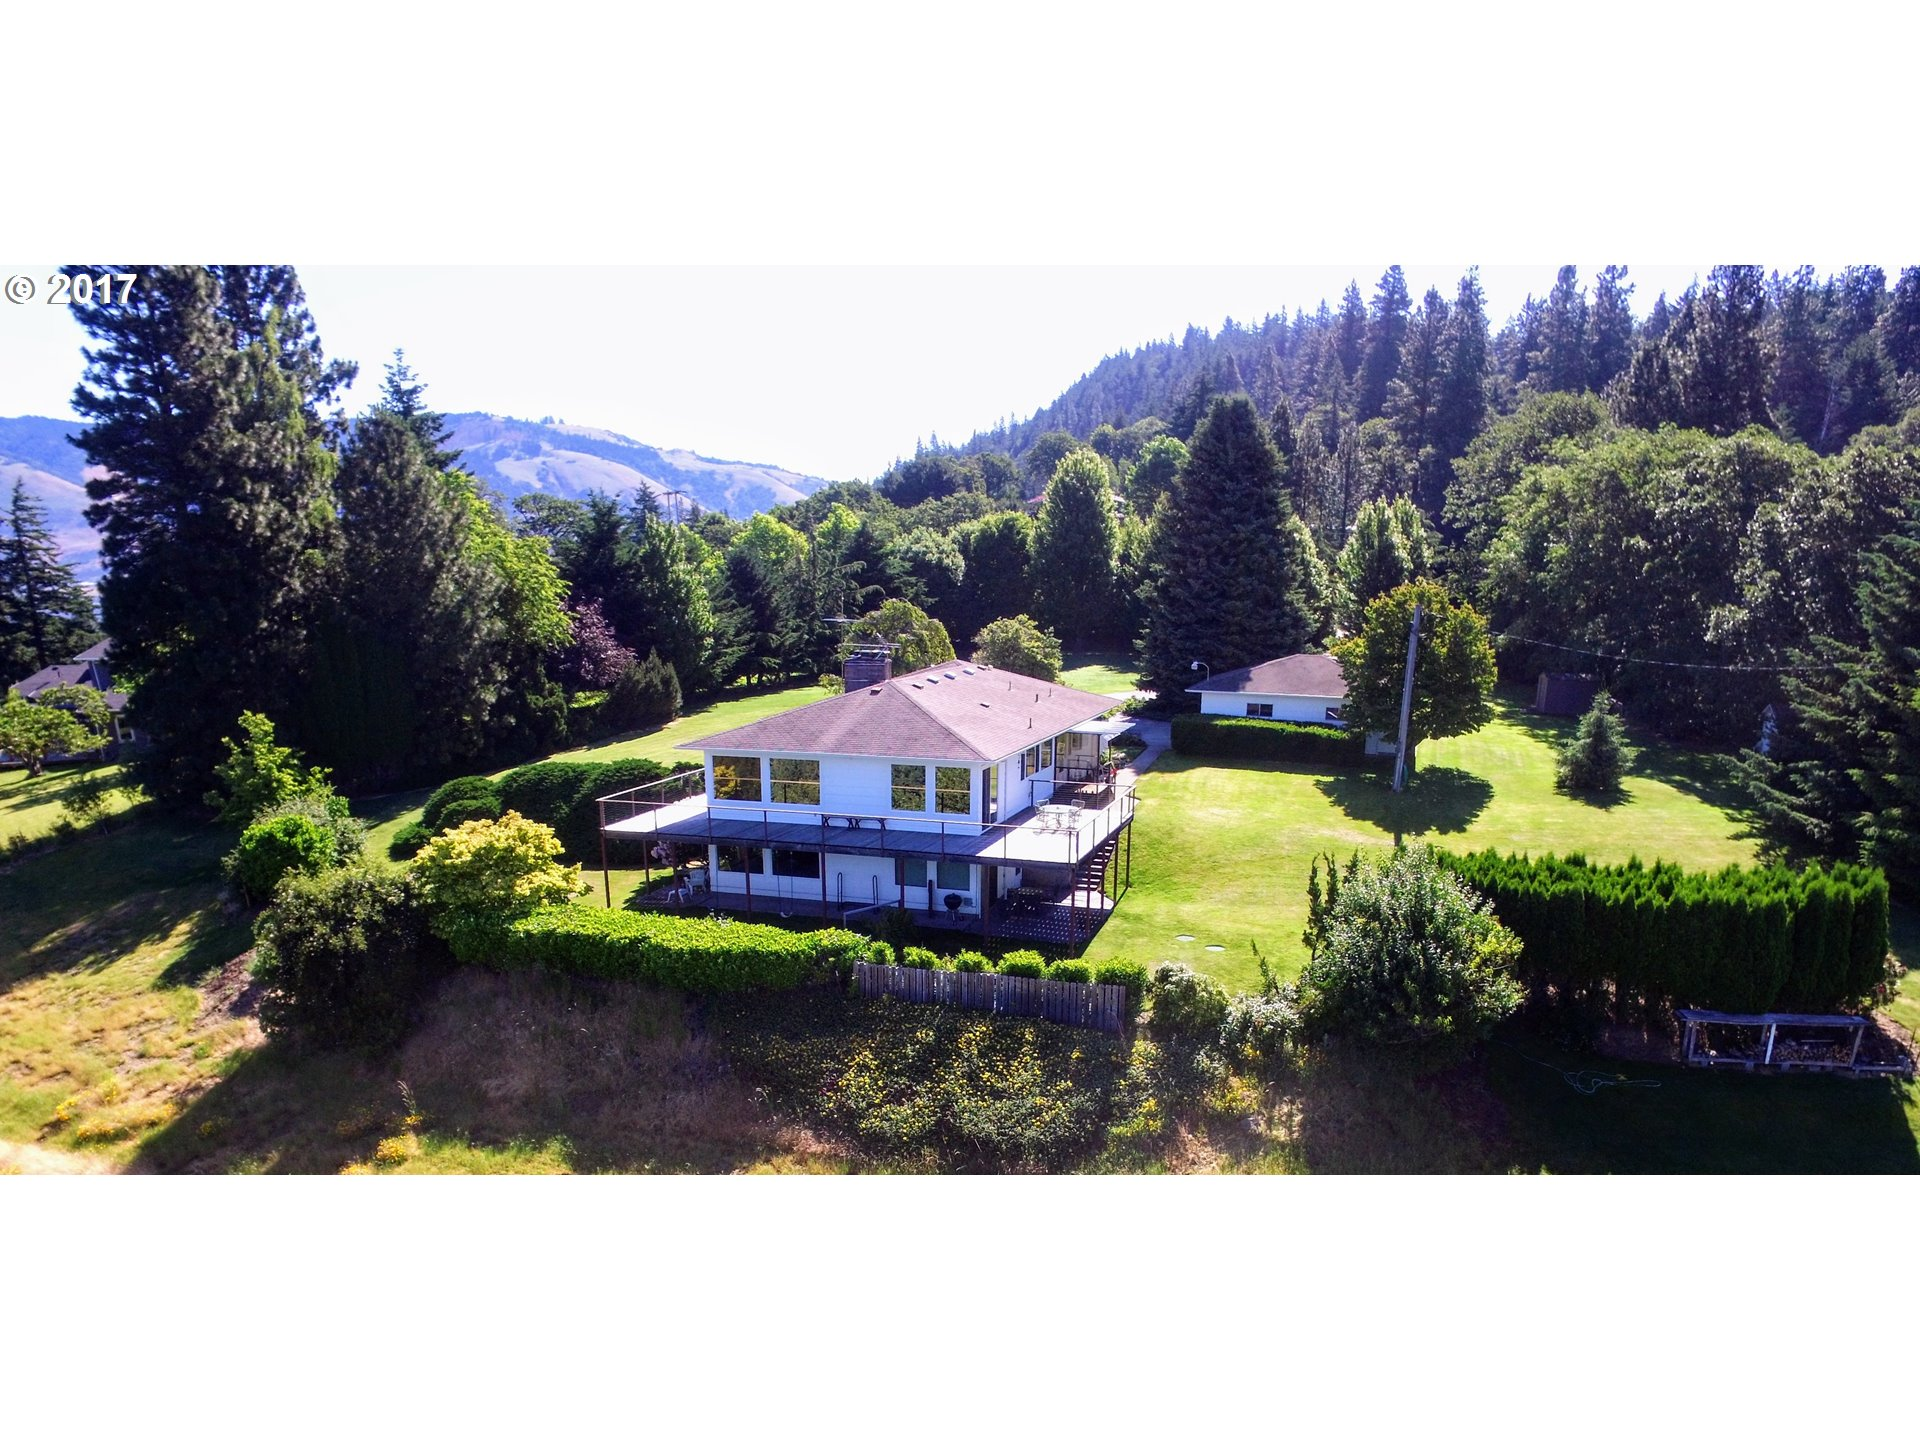 680 Highline DR, Hood River, OR 97031